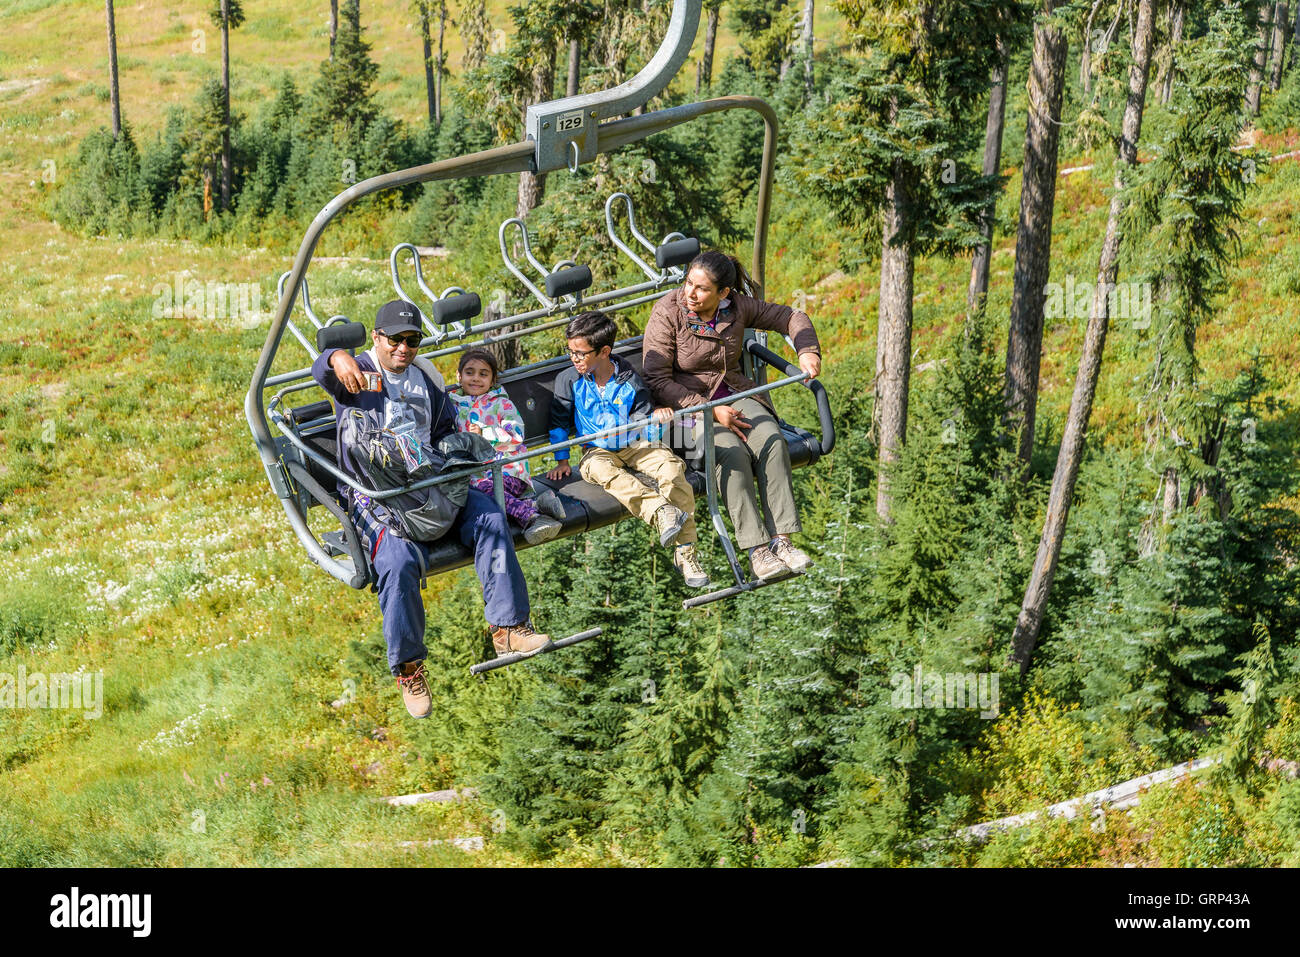 Chairlift, Whistler Blackcomb Mountain Resort, Whistler, British Columbia, Canada. - Stock Image